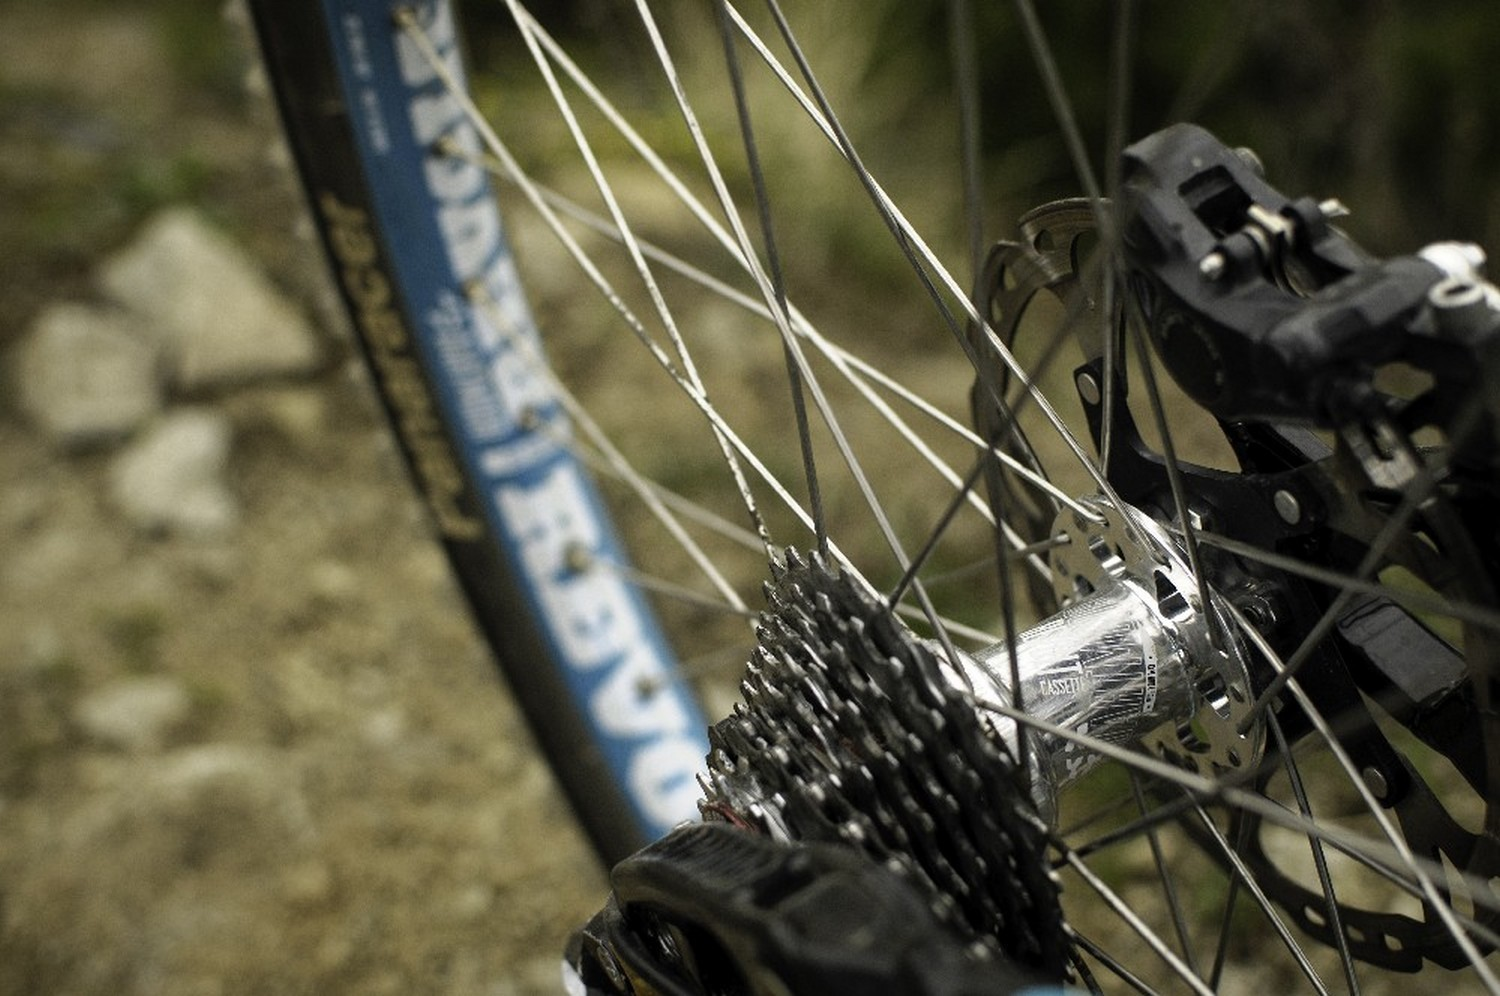 Dartmoor Revolt wheelset - Dartmoor Bikes - Mountain Biking Pictures - Vital MTB